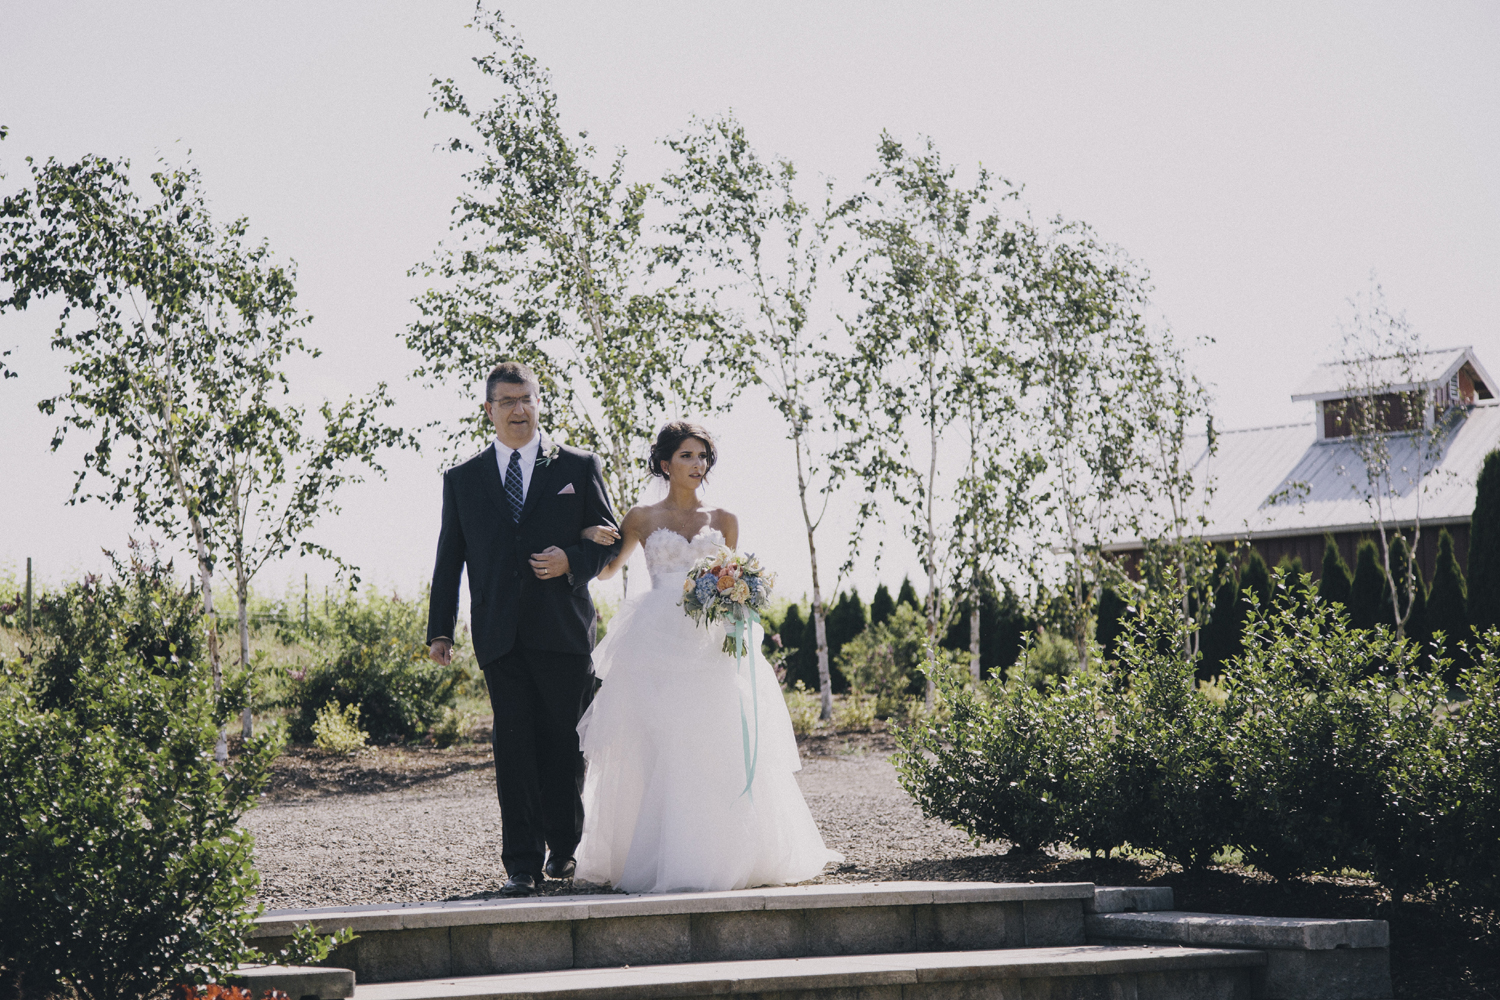 Bridalbliss.com | Portland Wedding | Oregon Event Planning and Design | Kira + Matt Photography | Alpine Productions